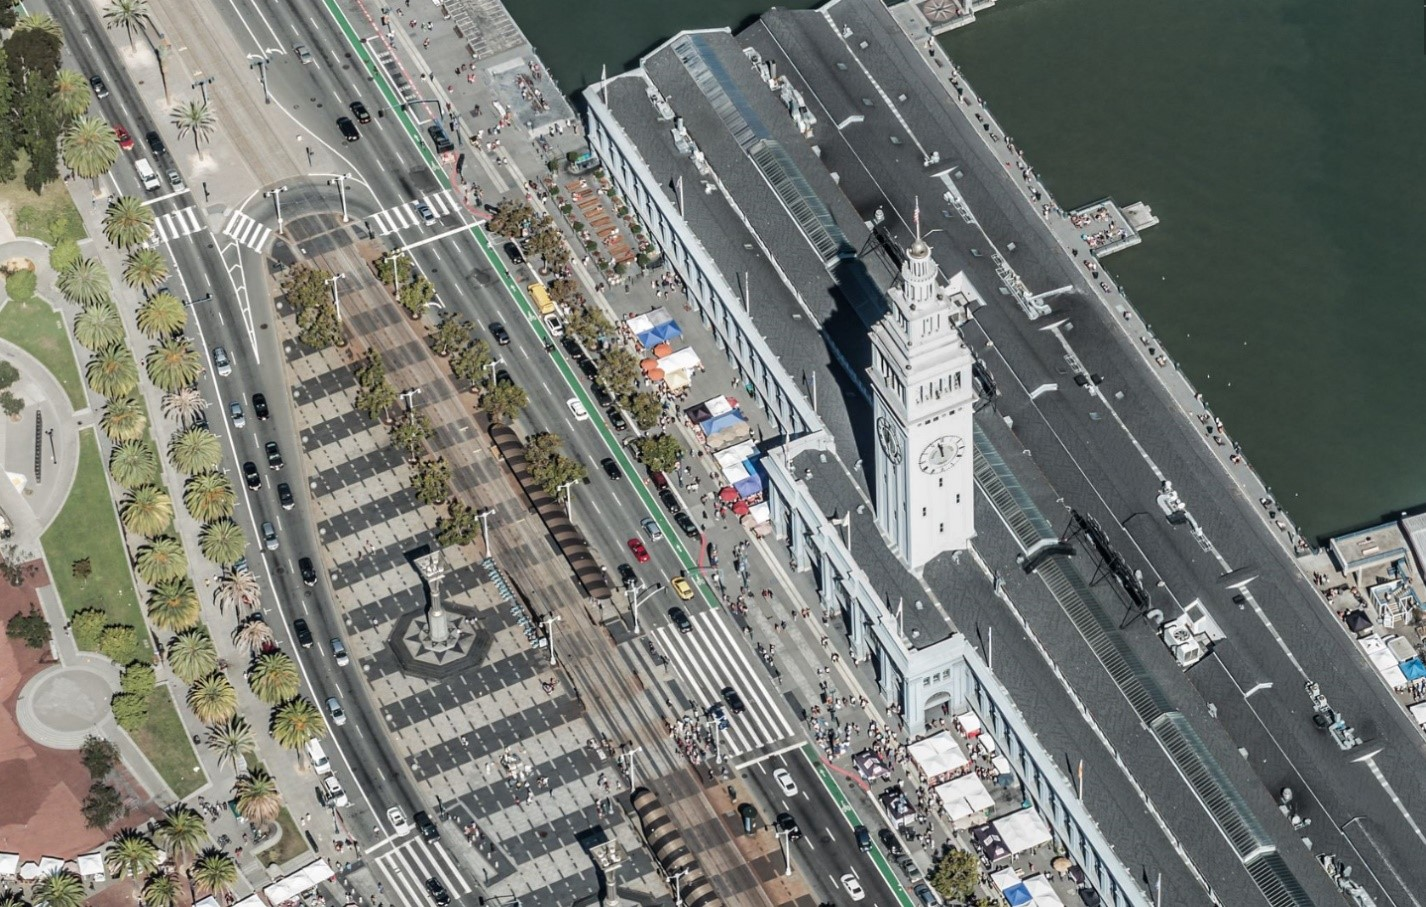 bing maps birds eye imagery is popular with end users because its high resolution oblique look angle and four look directions provide them with great